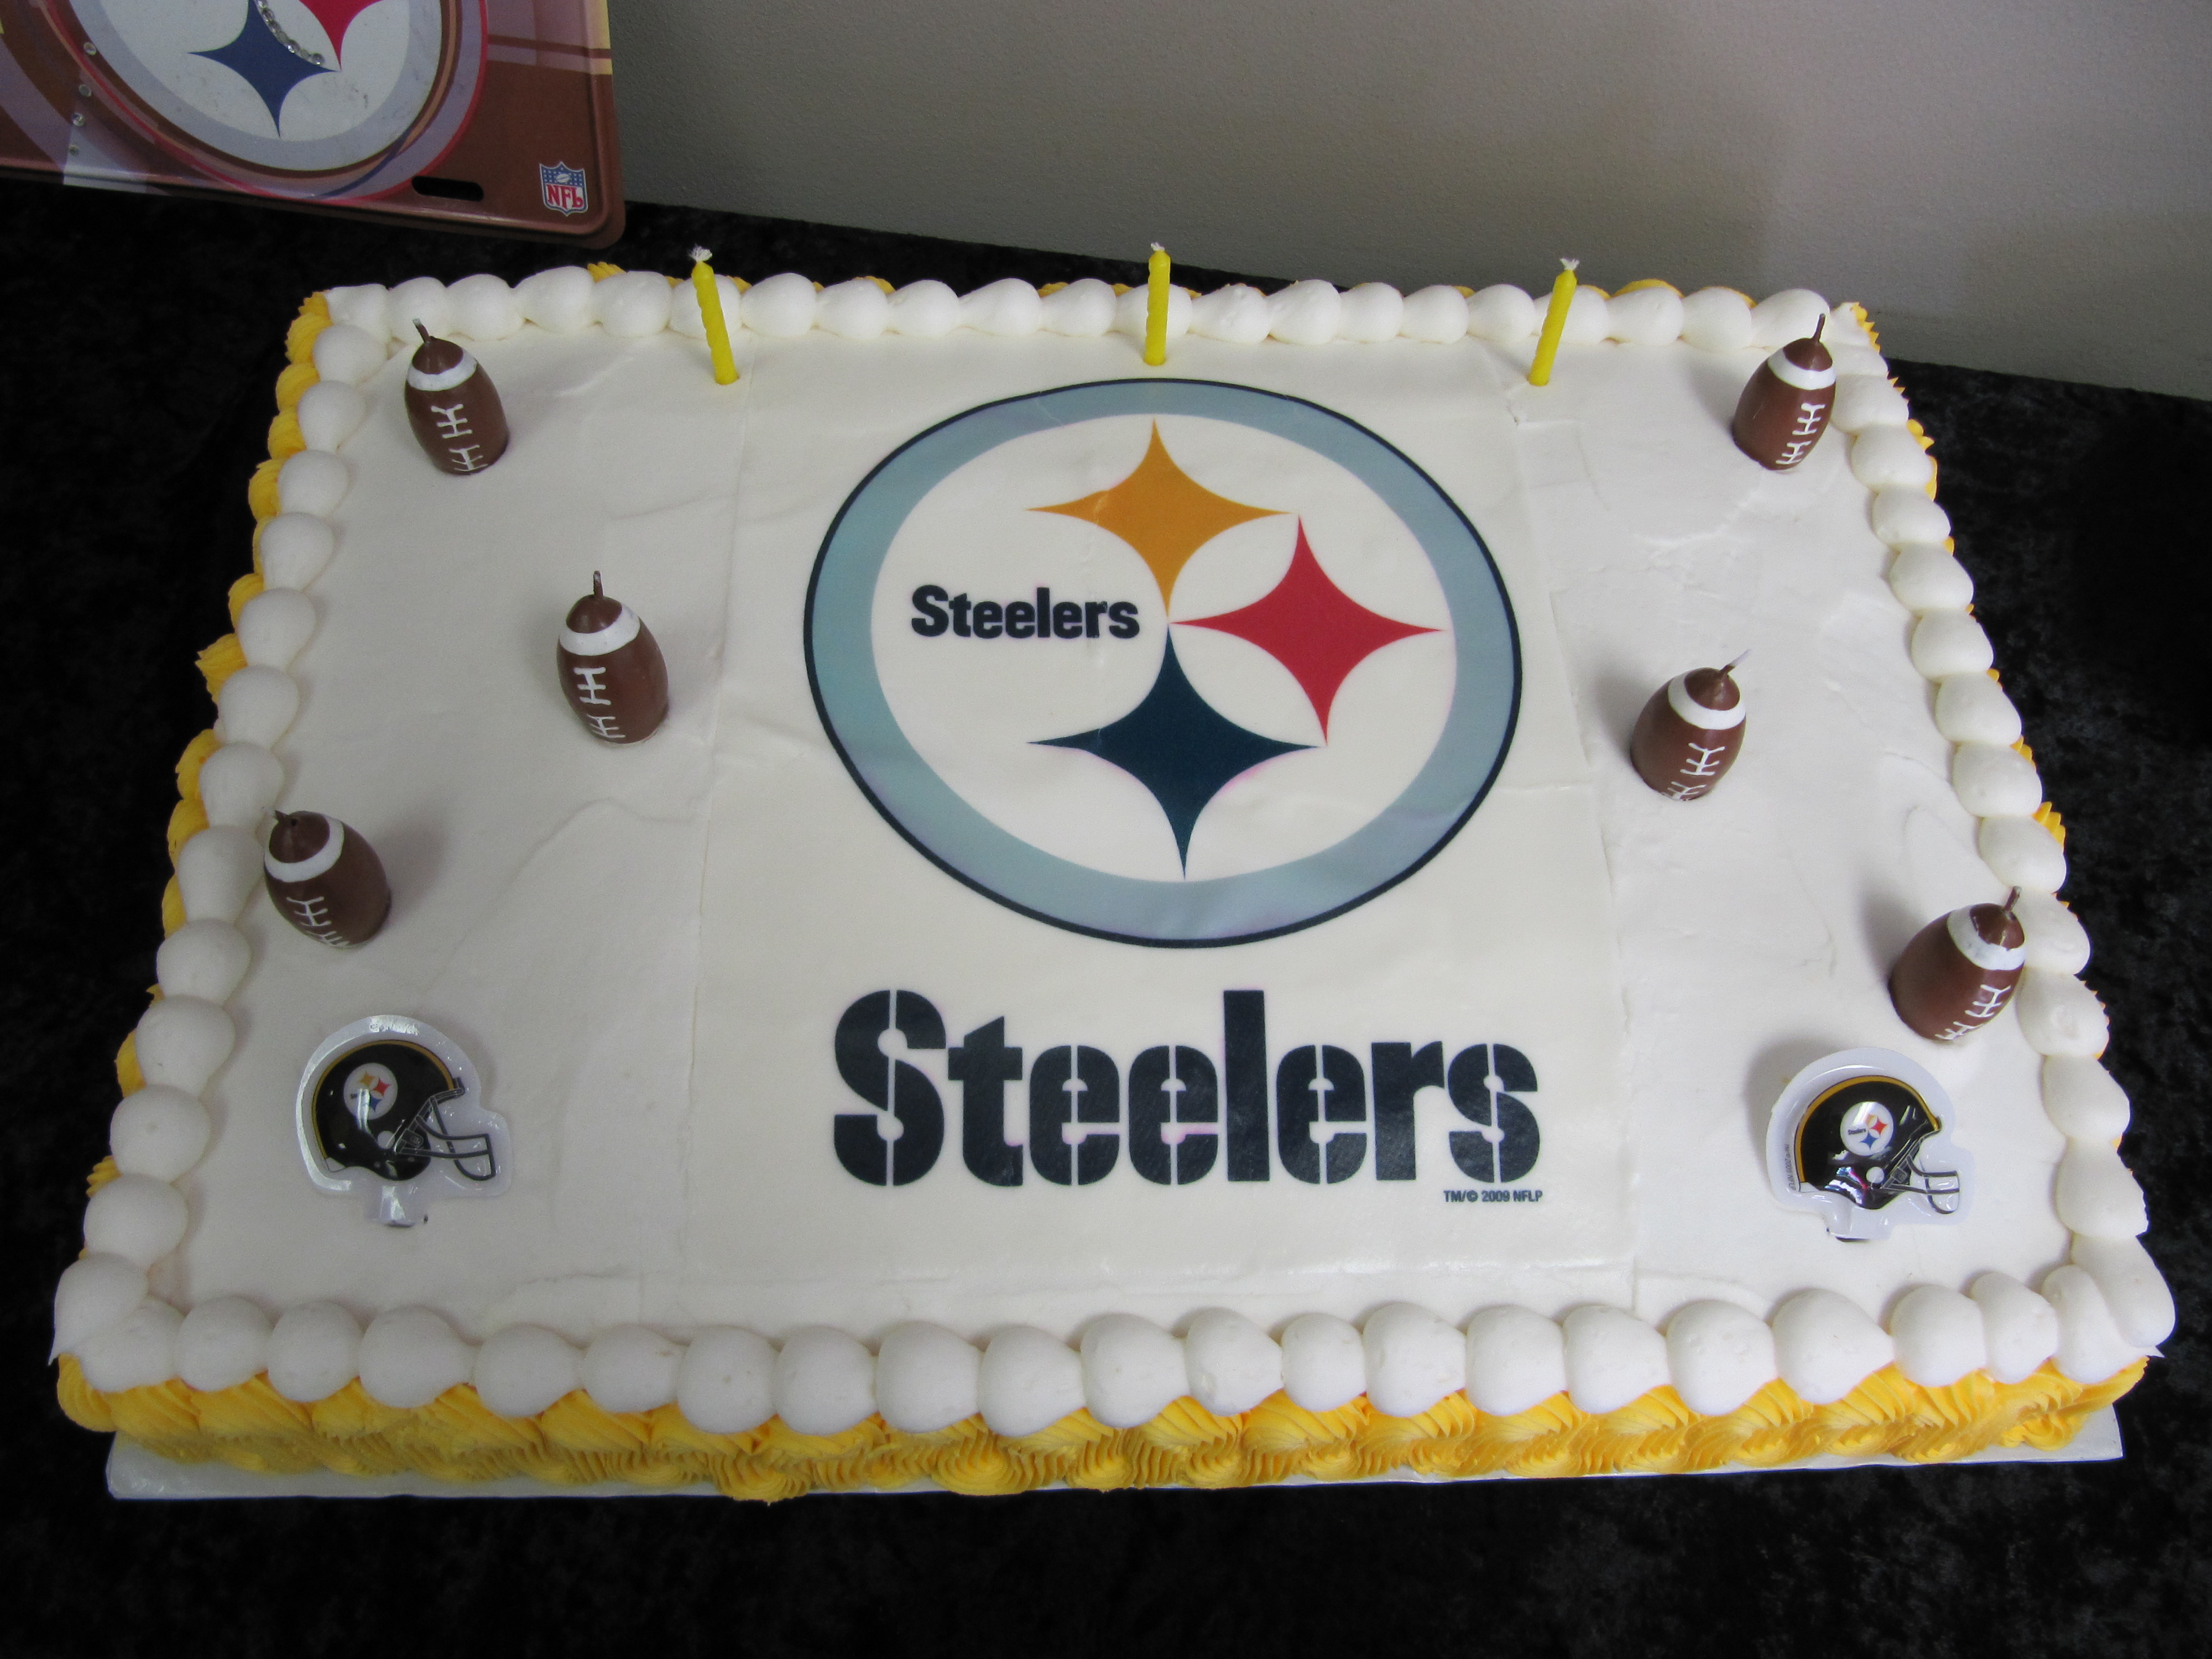 pittsburgh steelers happy birthday ; pittsburgh-steelers-birthday-cake-kezd%25C5%2591dik-a-szezon-steelers-hu-sz%25C3%25BClinap-pittsburgh-steelers-white-ad-yellow-color-combination